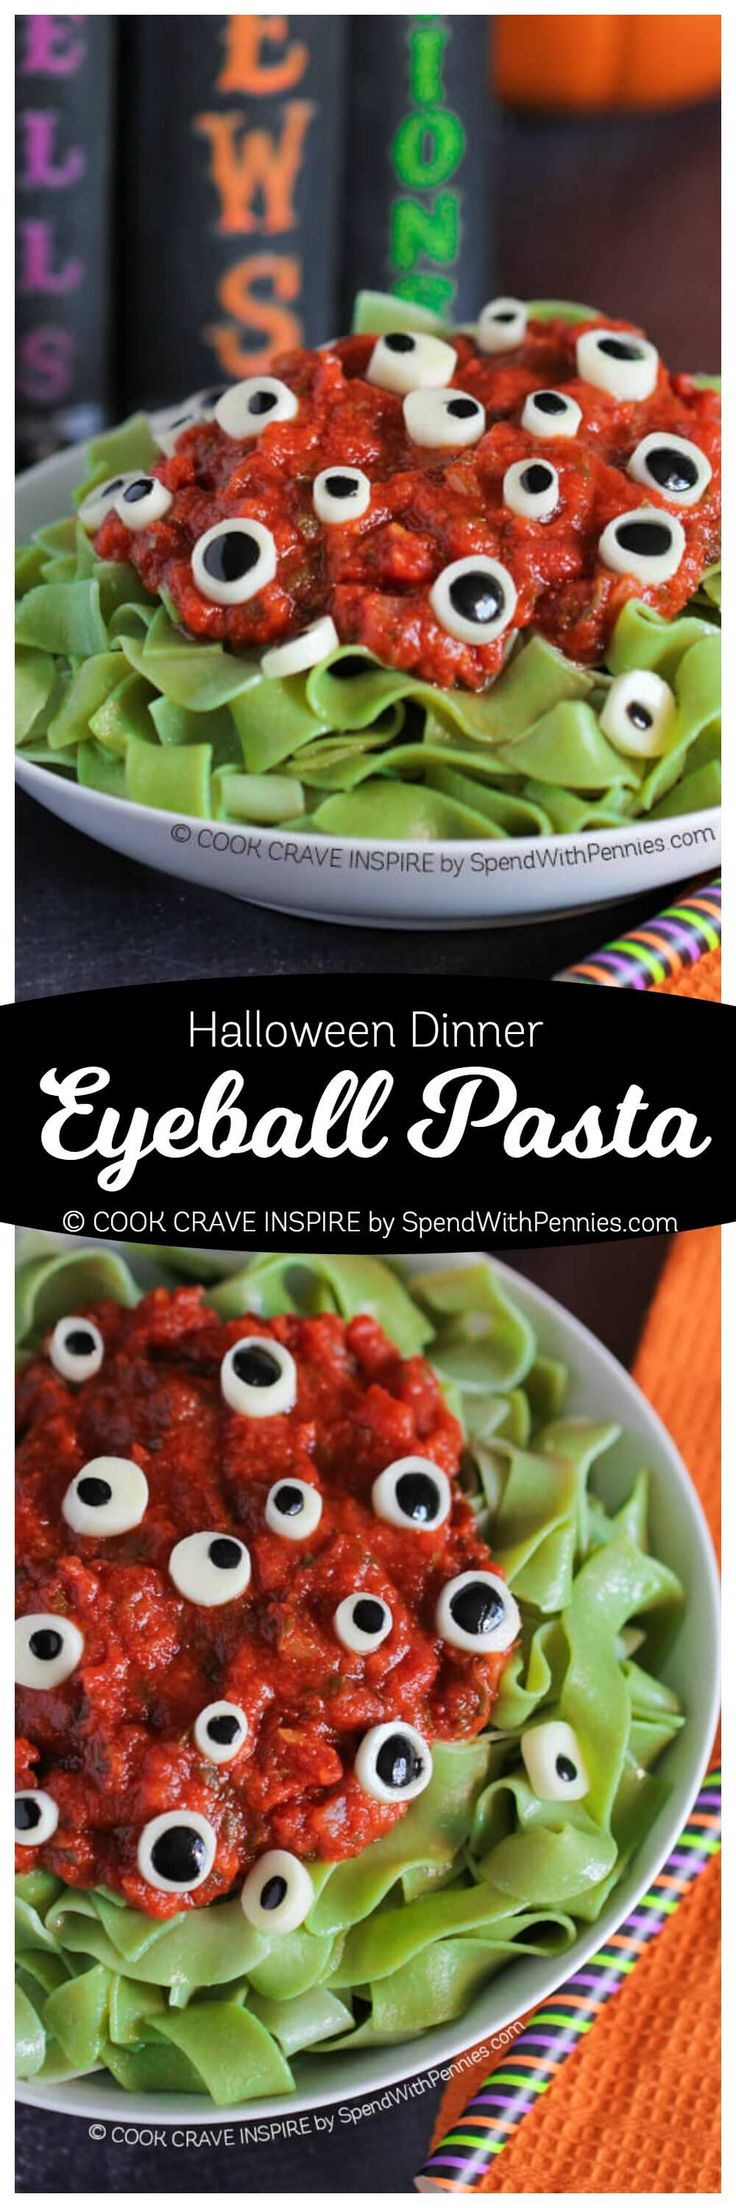 eyeball pasta halloween dinner idea - Halloween Kid Foods To Make